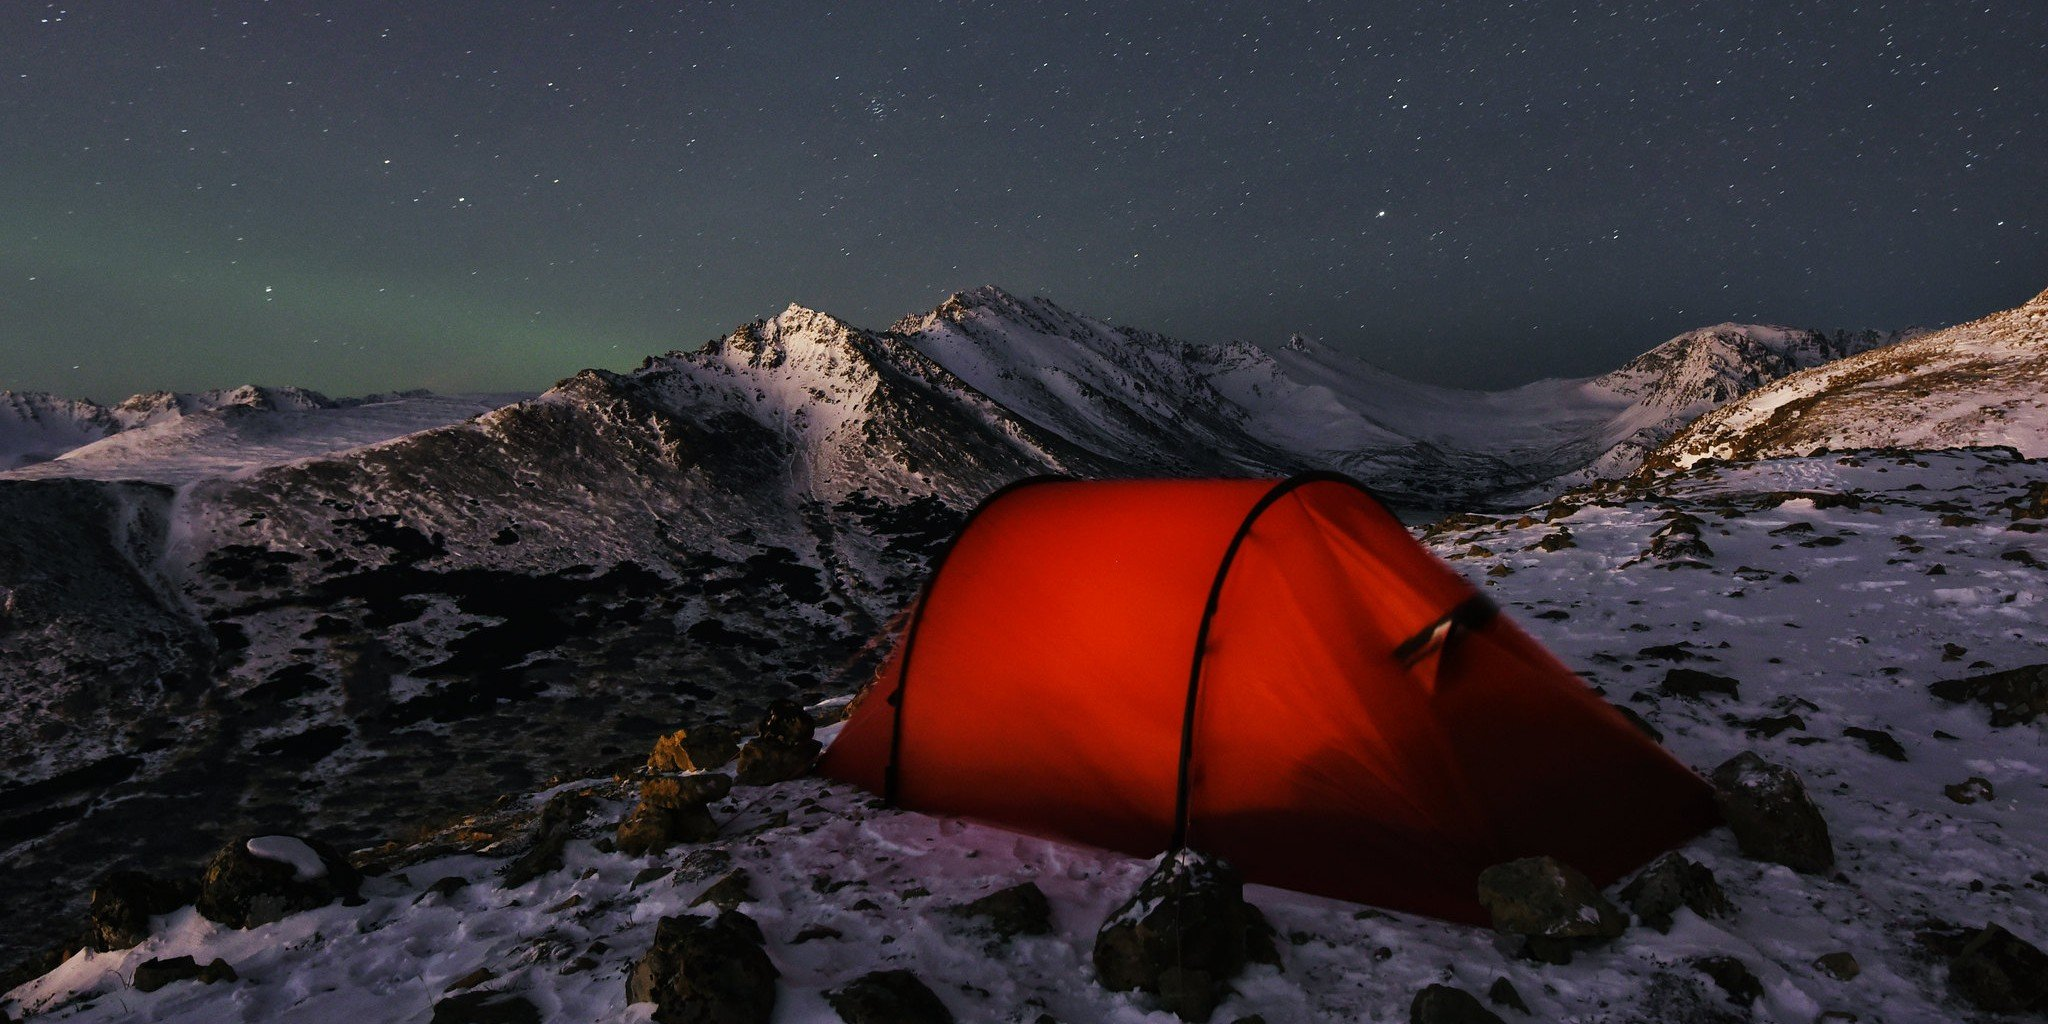 The ultimate tent buying guide for 2020: Are expensive tents worth it?